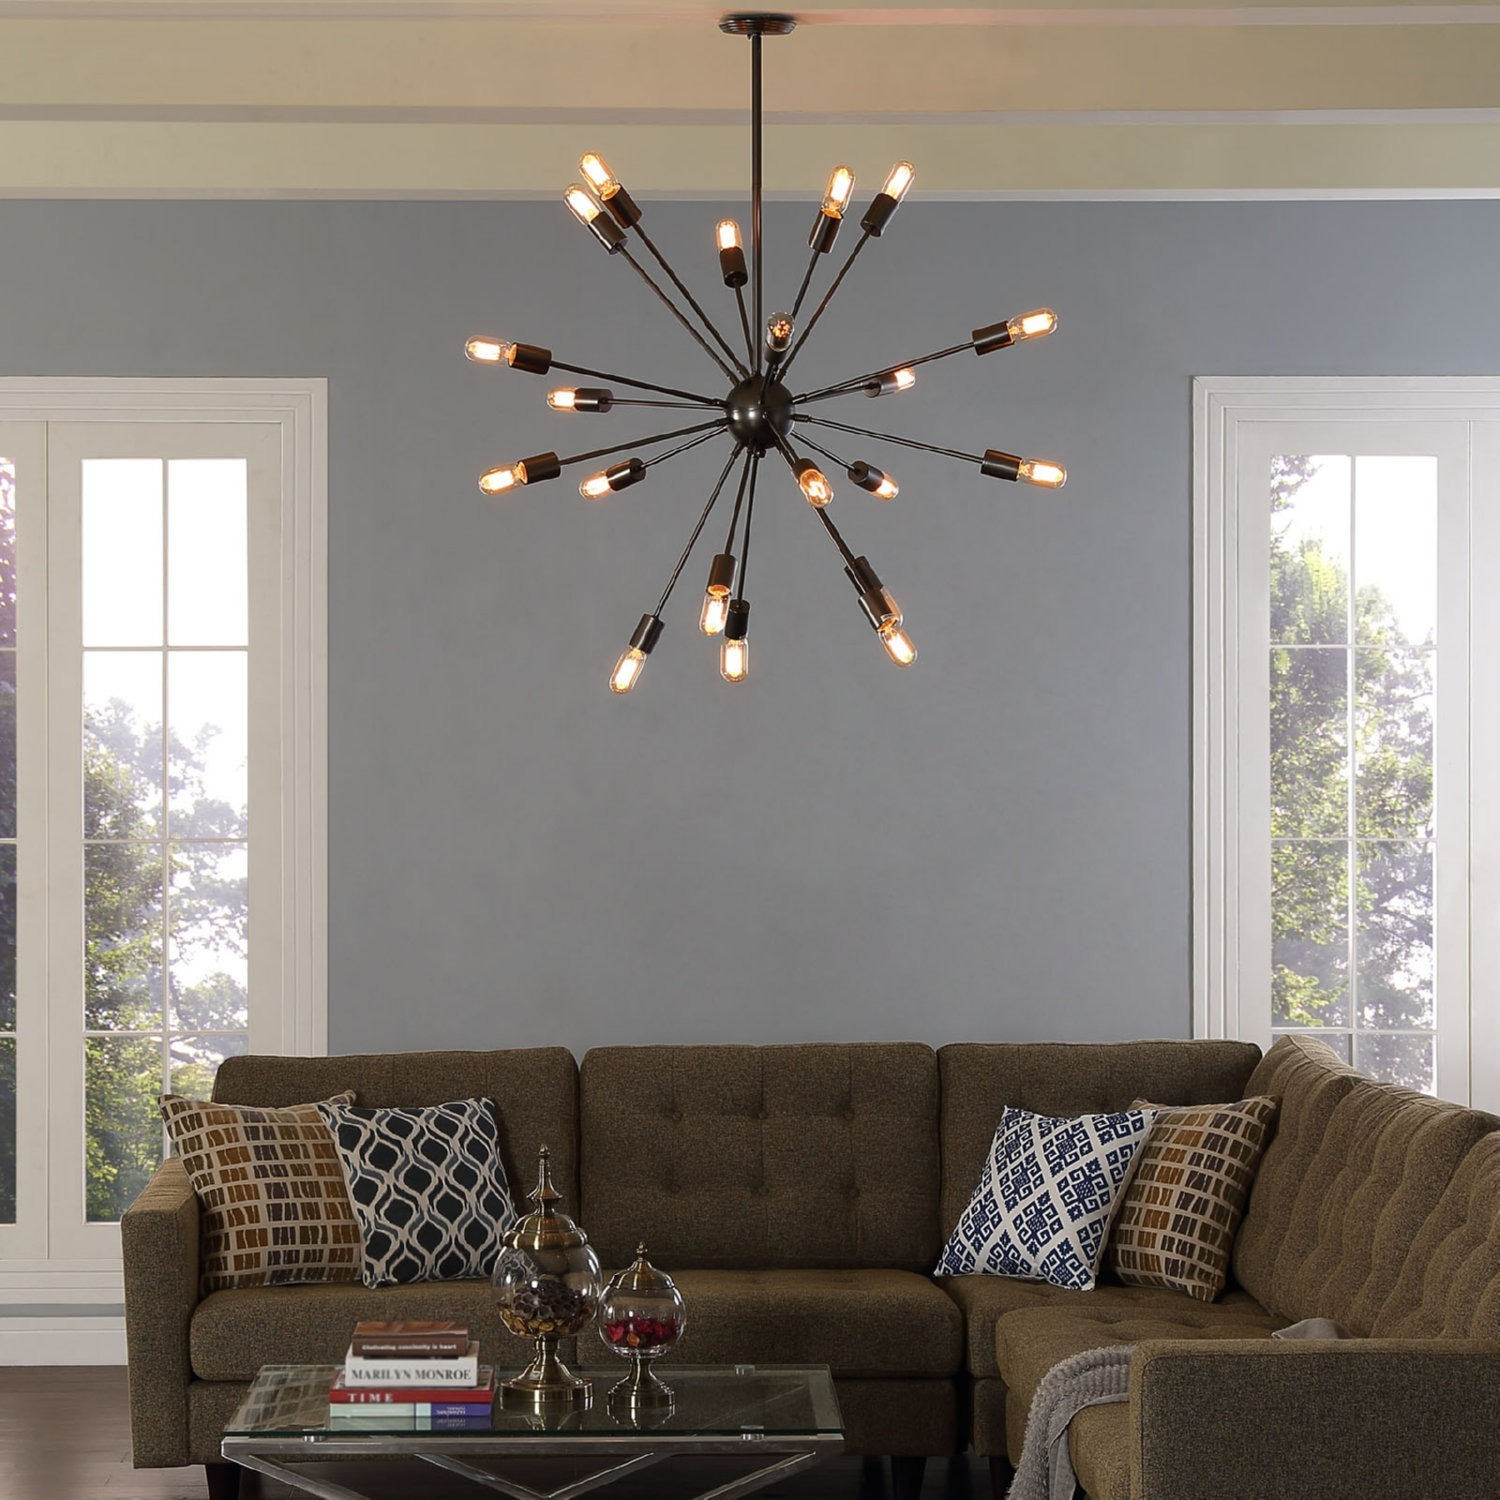 Chandelier In Stainless Steel Gray Finish - image-3